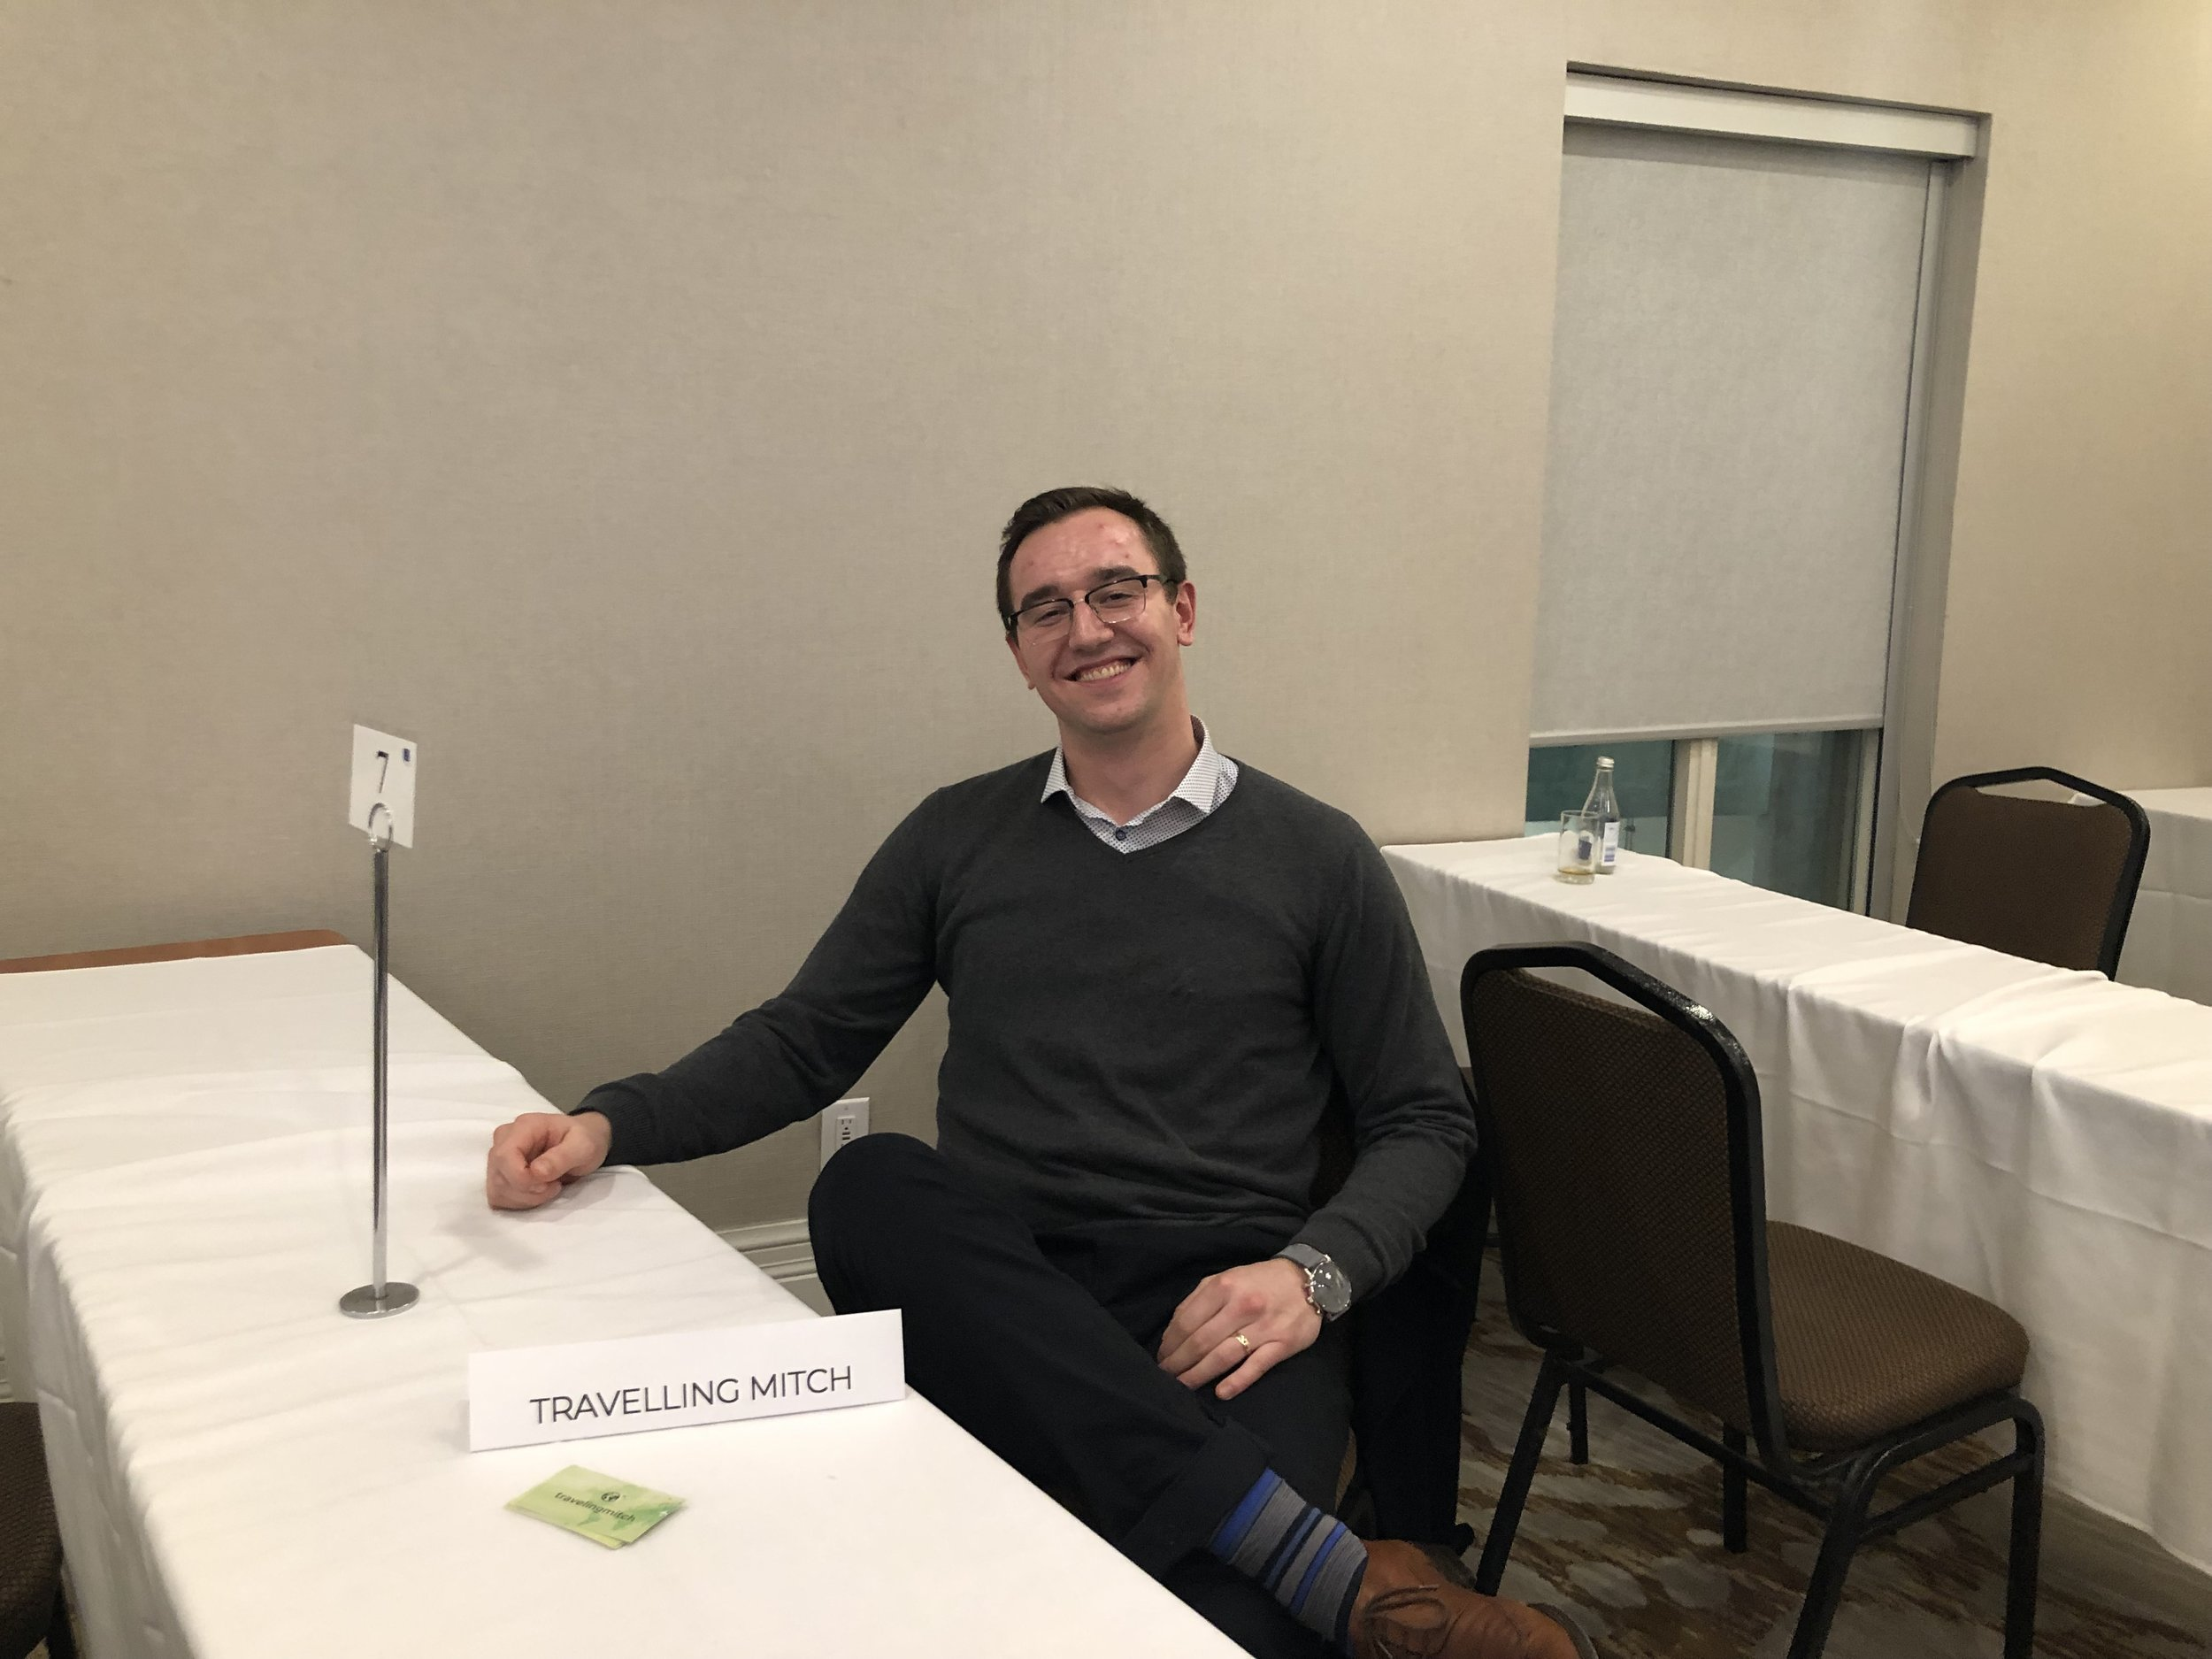 I was one of 15 young travel professionals selected to be a booth for Humber College students on the 3rd Annual Young Travel Professionals Speed Networking Session. I spoke with innumerable students with what it takes to make it in the industry.